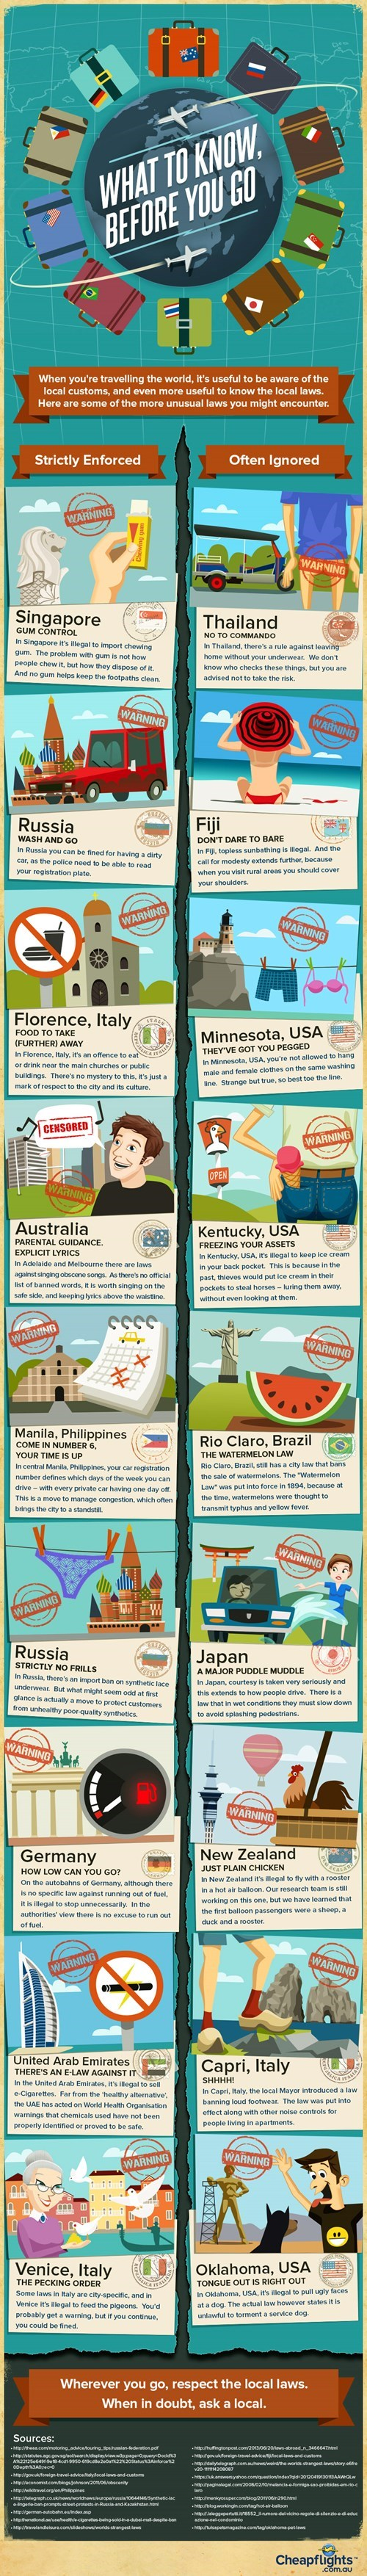 18 Strange Laws From Around the World